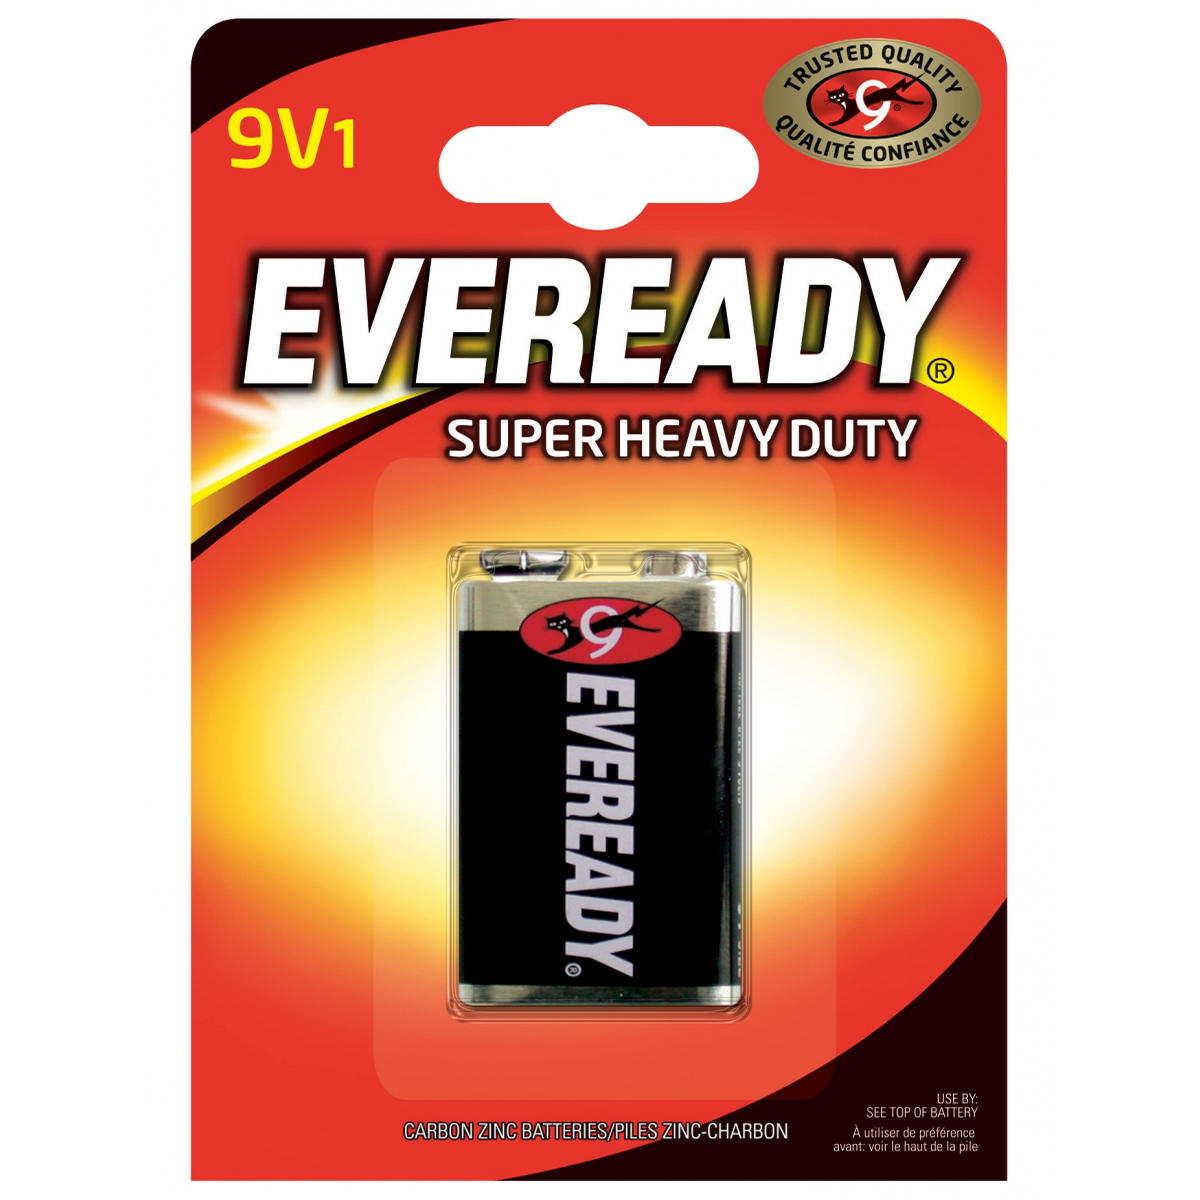 Eveready SHD 9V6F22 Pil FSB1